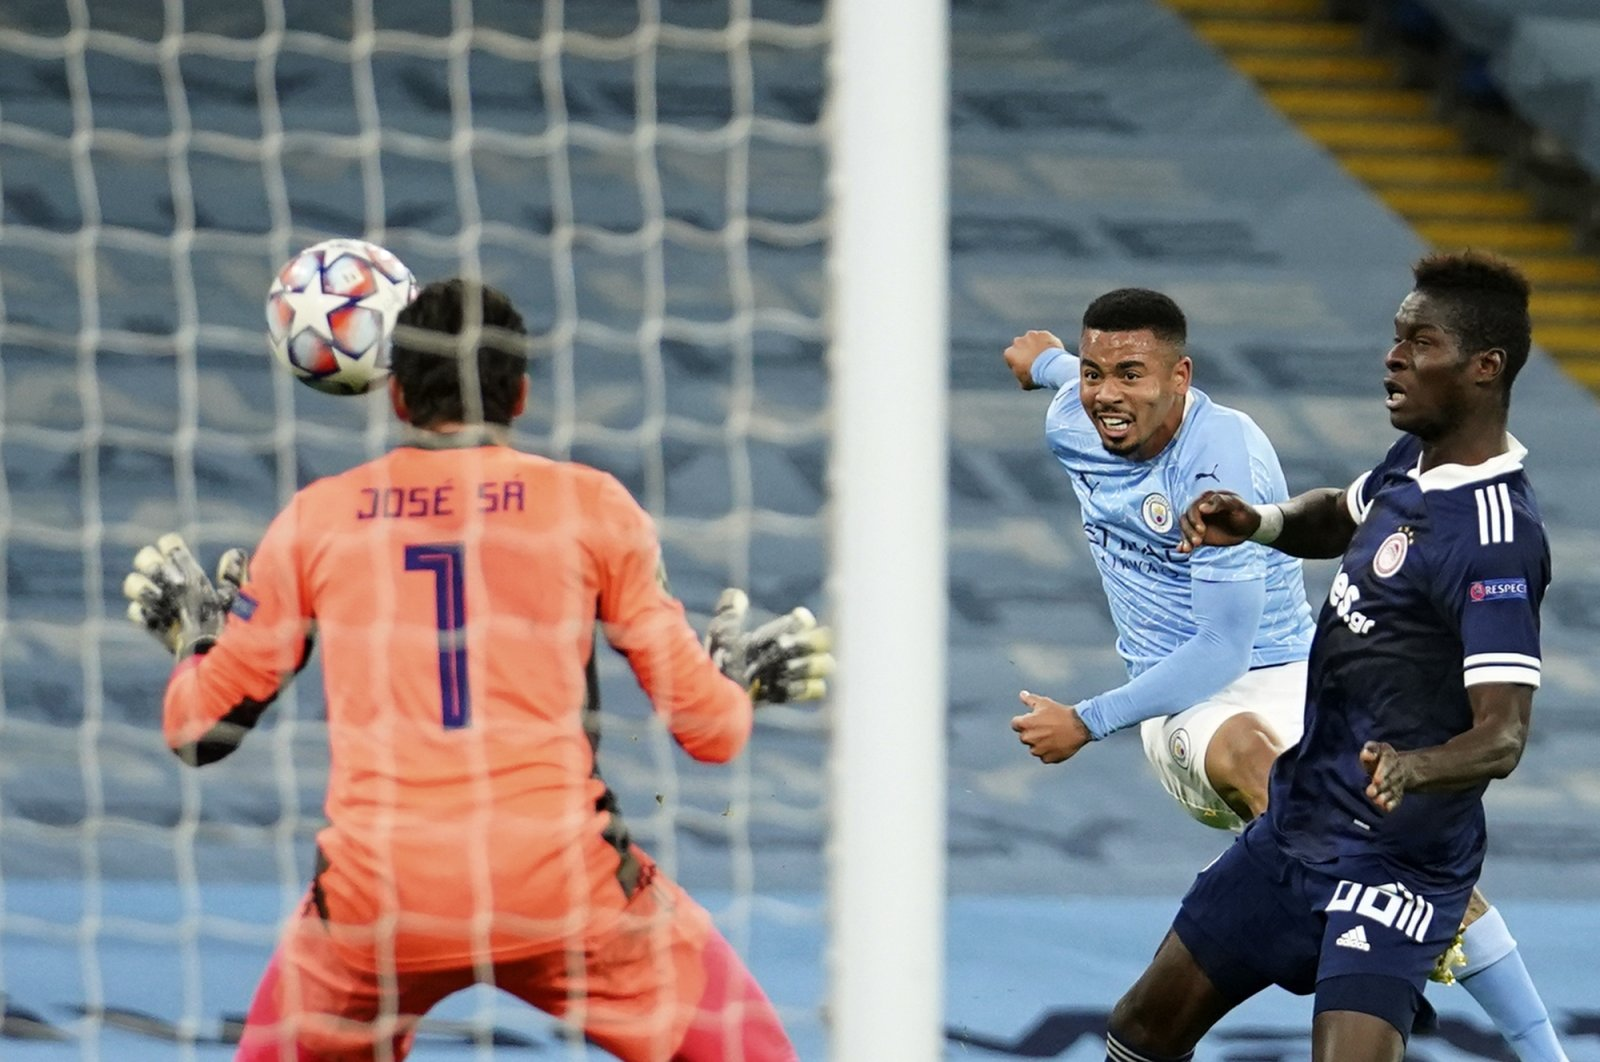 Manchester City's Gabriel Jesus (C) scores a goal during the Champions League match against Olympiacos, in Manchester, England, Nov. 3, 2020. (AP Photo)